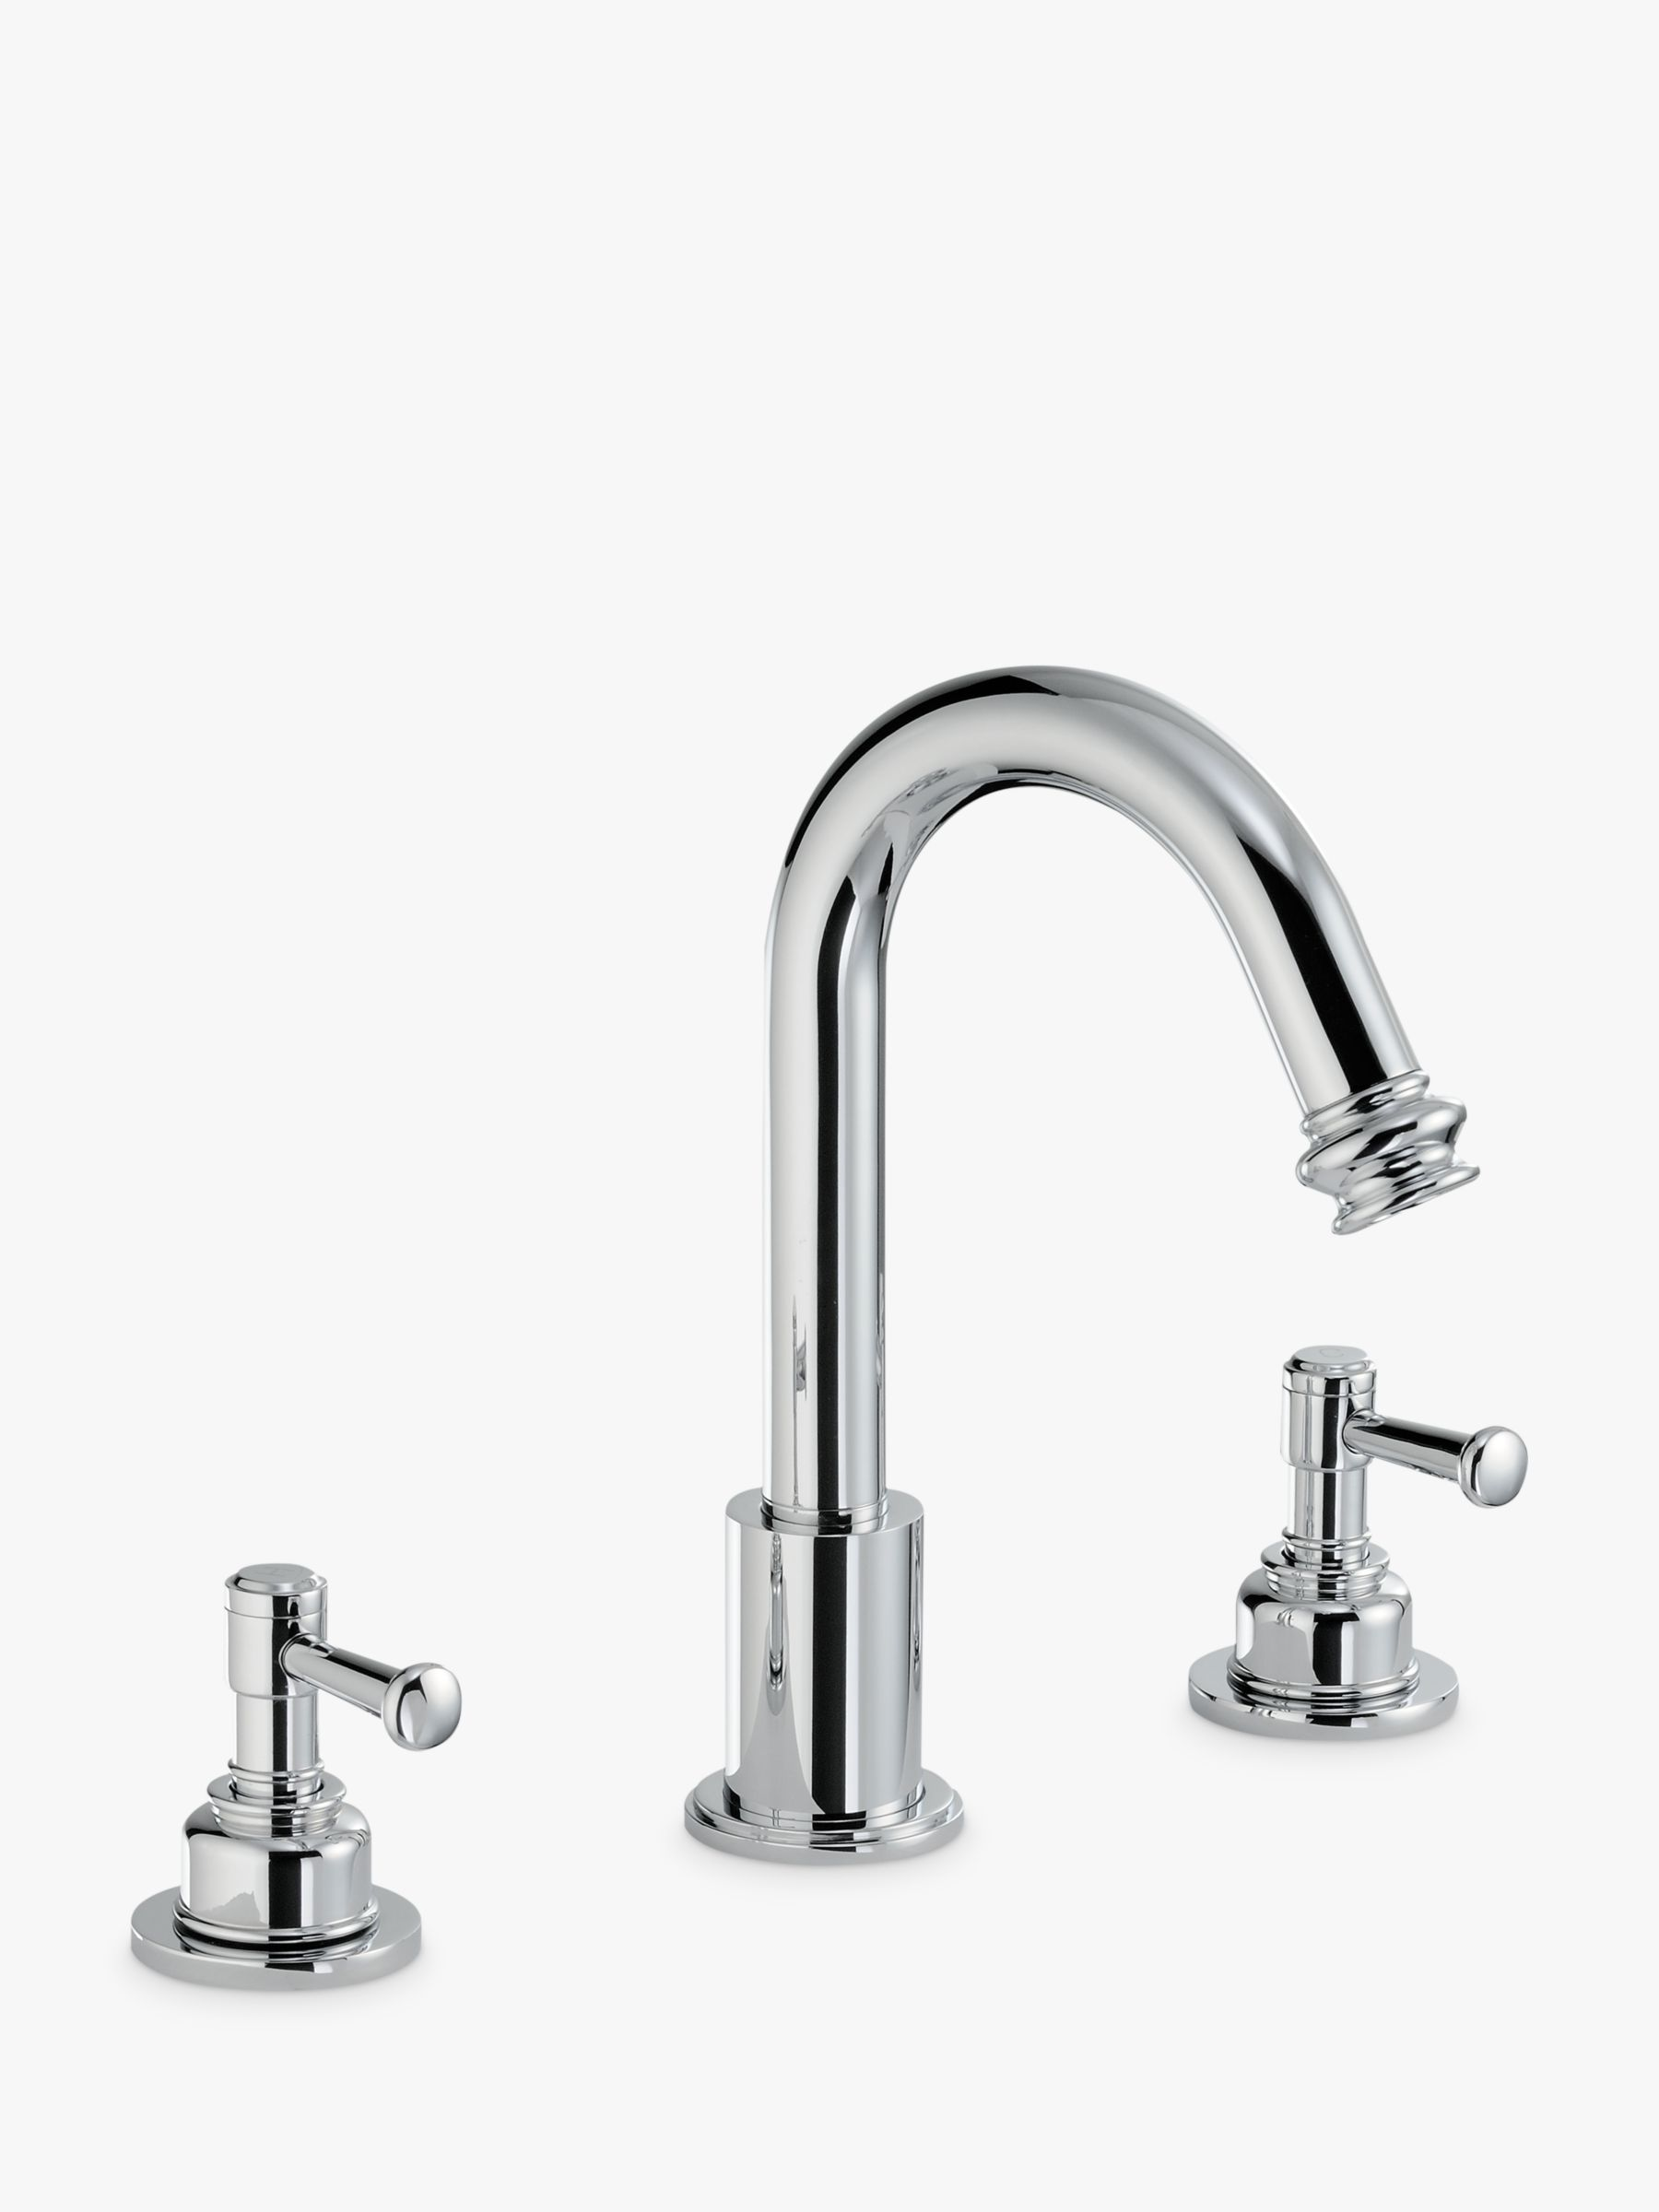 Abode Abode Gallant Deck Mounted 3TH Basin Mixer Tap